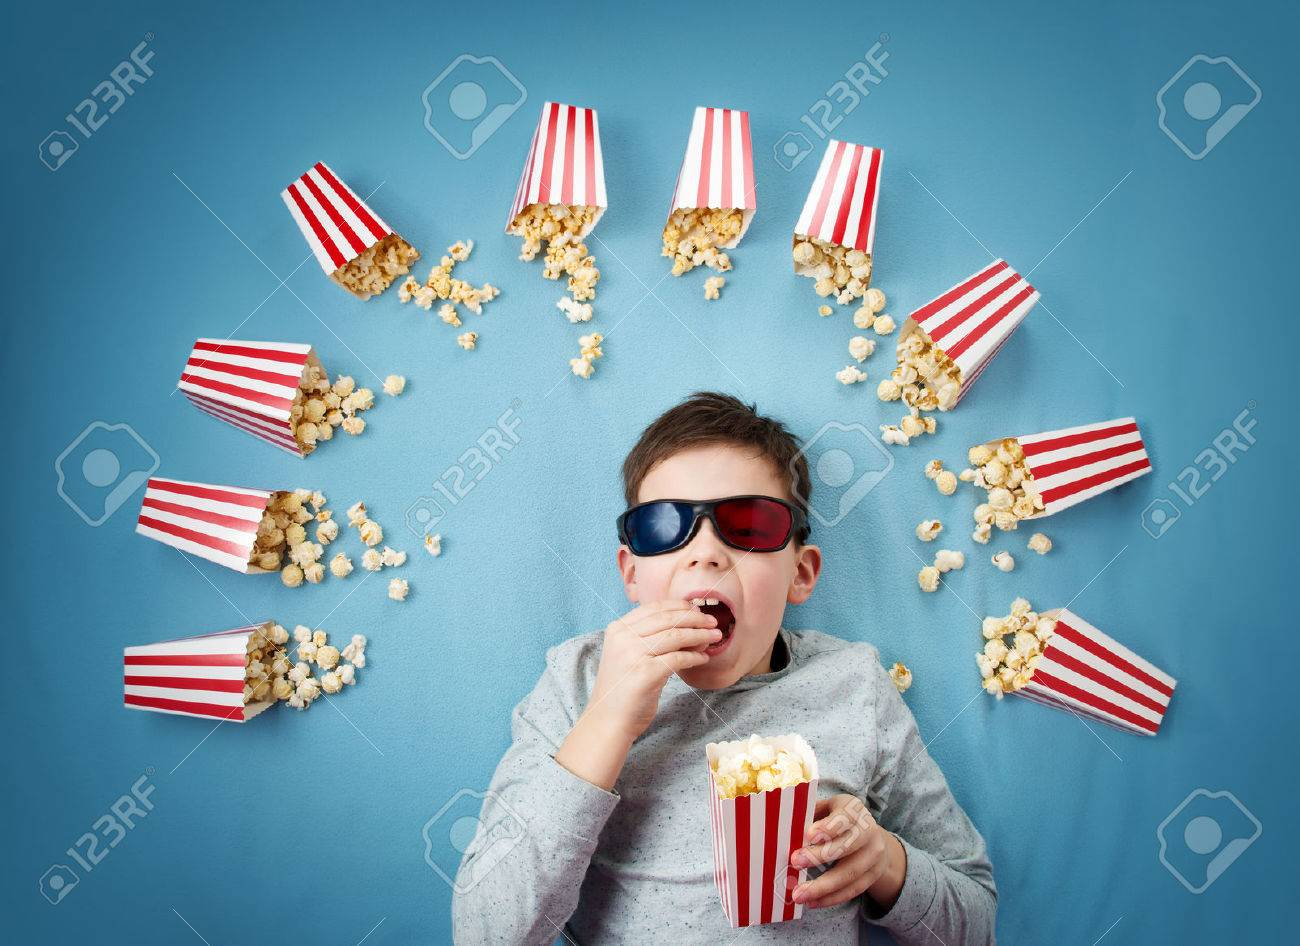 Child lying on blue background in 3d glasses and watching tv - 69914395